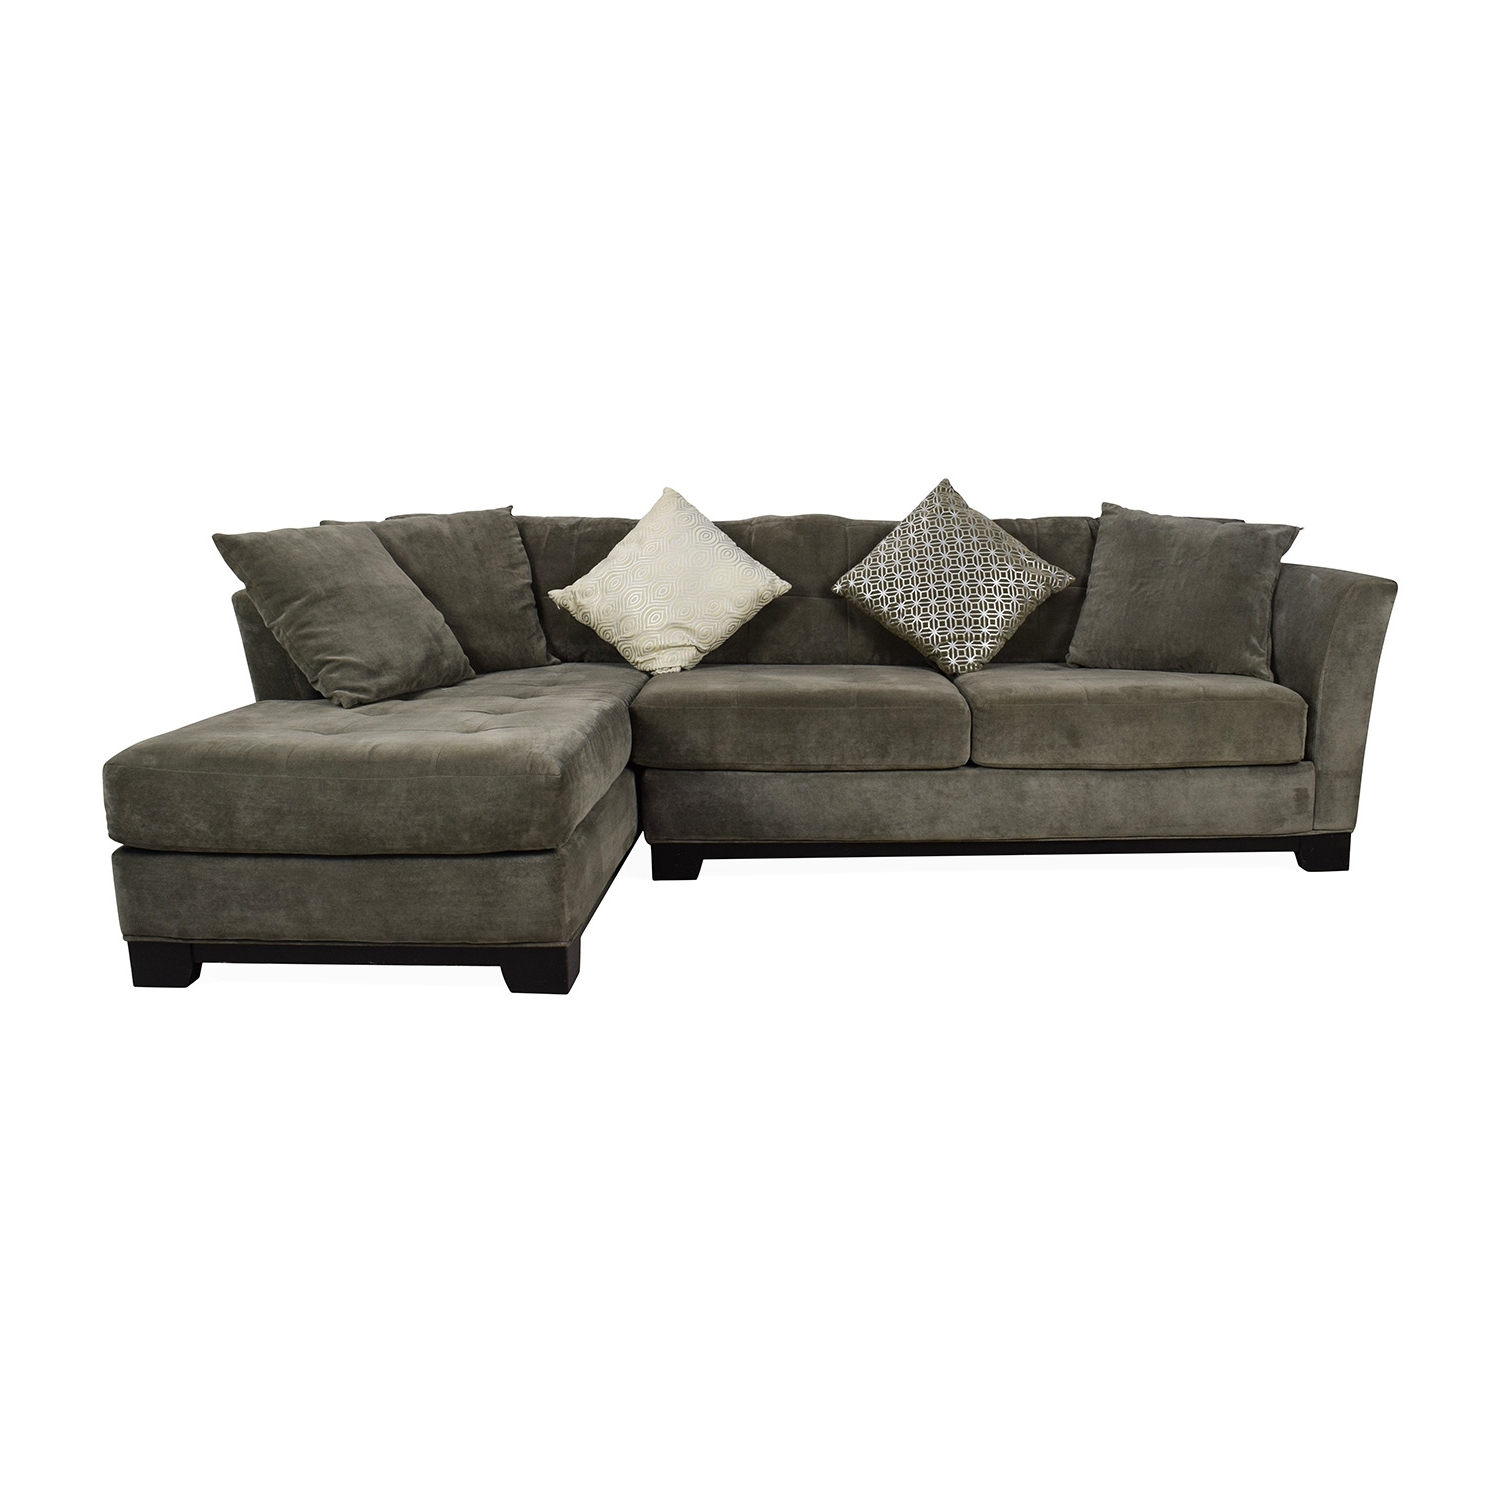 [%50% Off – Macy's Macy's Gray Sectional Couch With Chaise / Sofas With Famous Gray Couches With Chaise|Gray Couches With Chaise With Recent 50% Off – Macy's Macy's Gray Sectional Couch With Chaise / Sofas|Most Up To Date Gray Couches With Chaise For 50% Off – Macy's Macy's Gray Sectional Couch With Chaise / Sofas|Newest 50% Off – Macy's Macy's Gray Sectional Couch With Chaise / Sofas Intended For Gray Couches With Chaise%] (View 10 of 15)